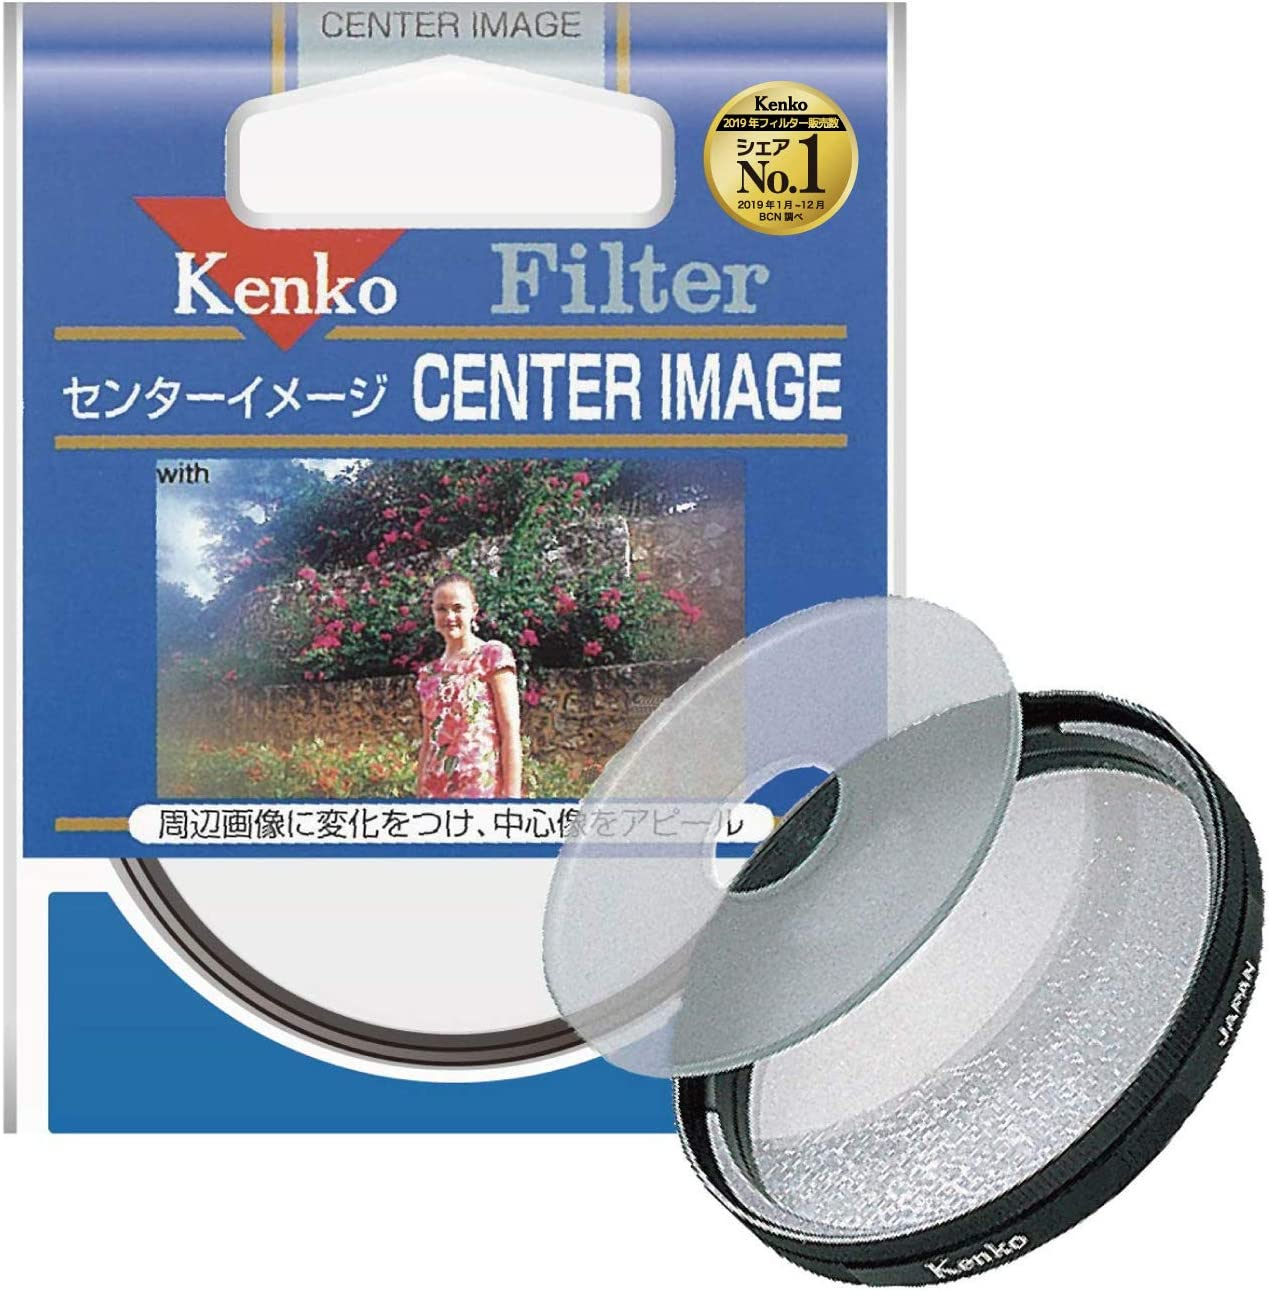 Kenko 62mm Center Image Lens Filters 35% OFF Same day shipping Camera